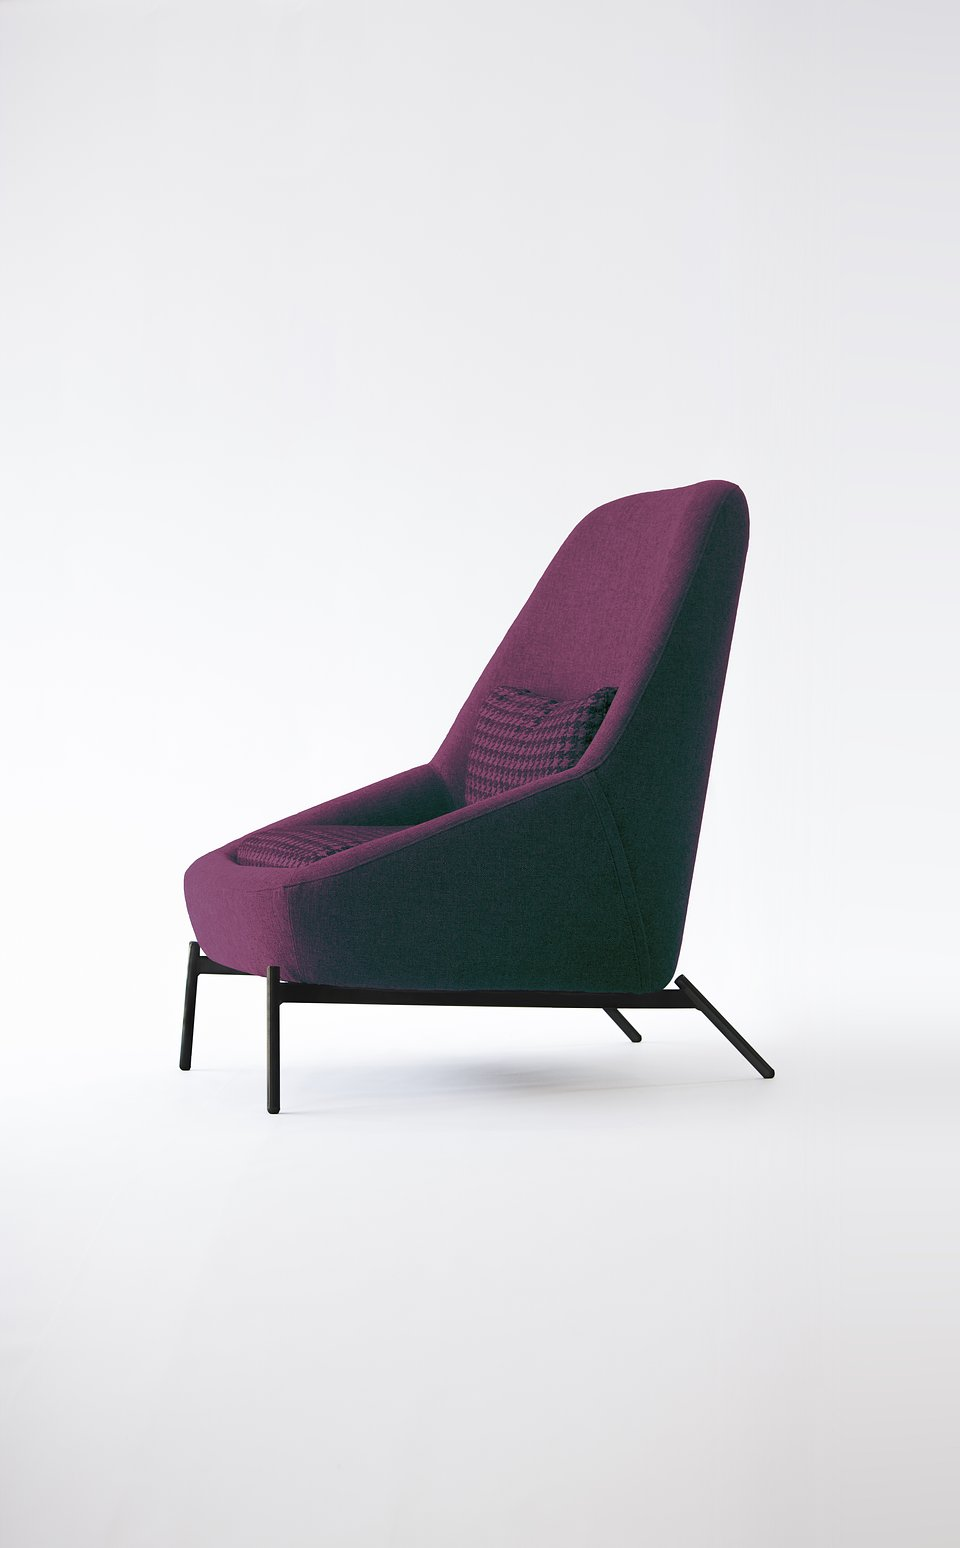 Gull armchair for Koo International (11).jpg